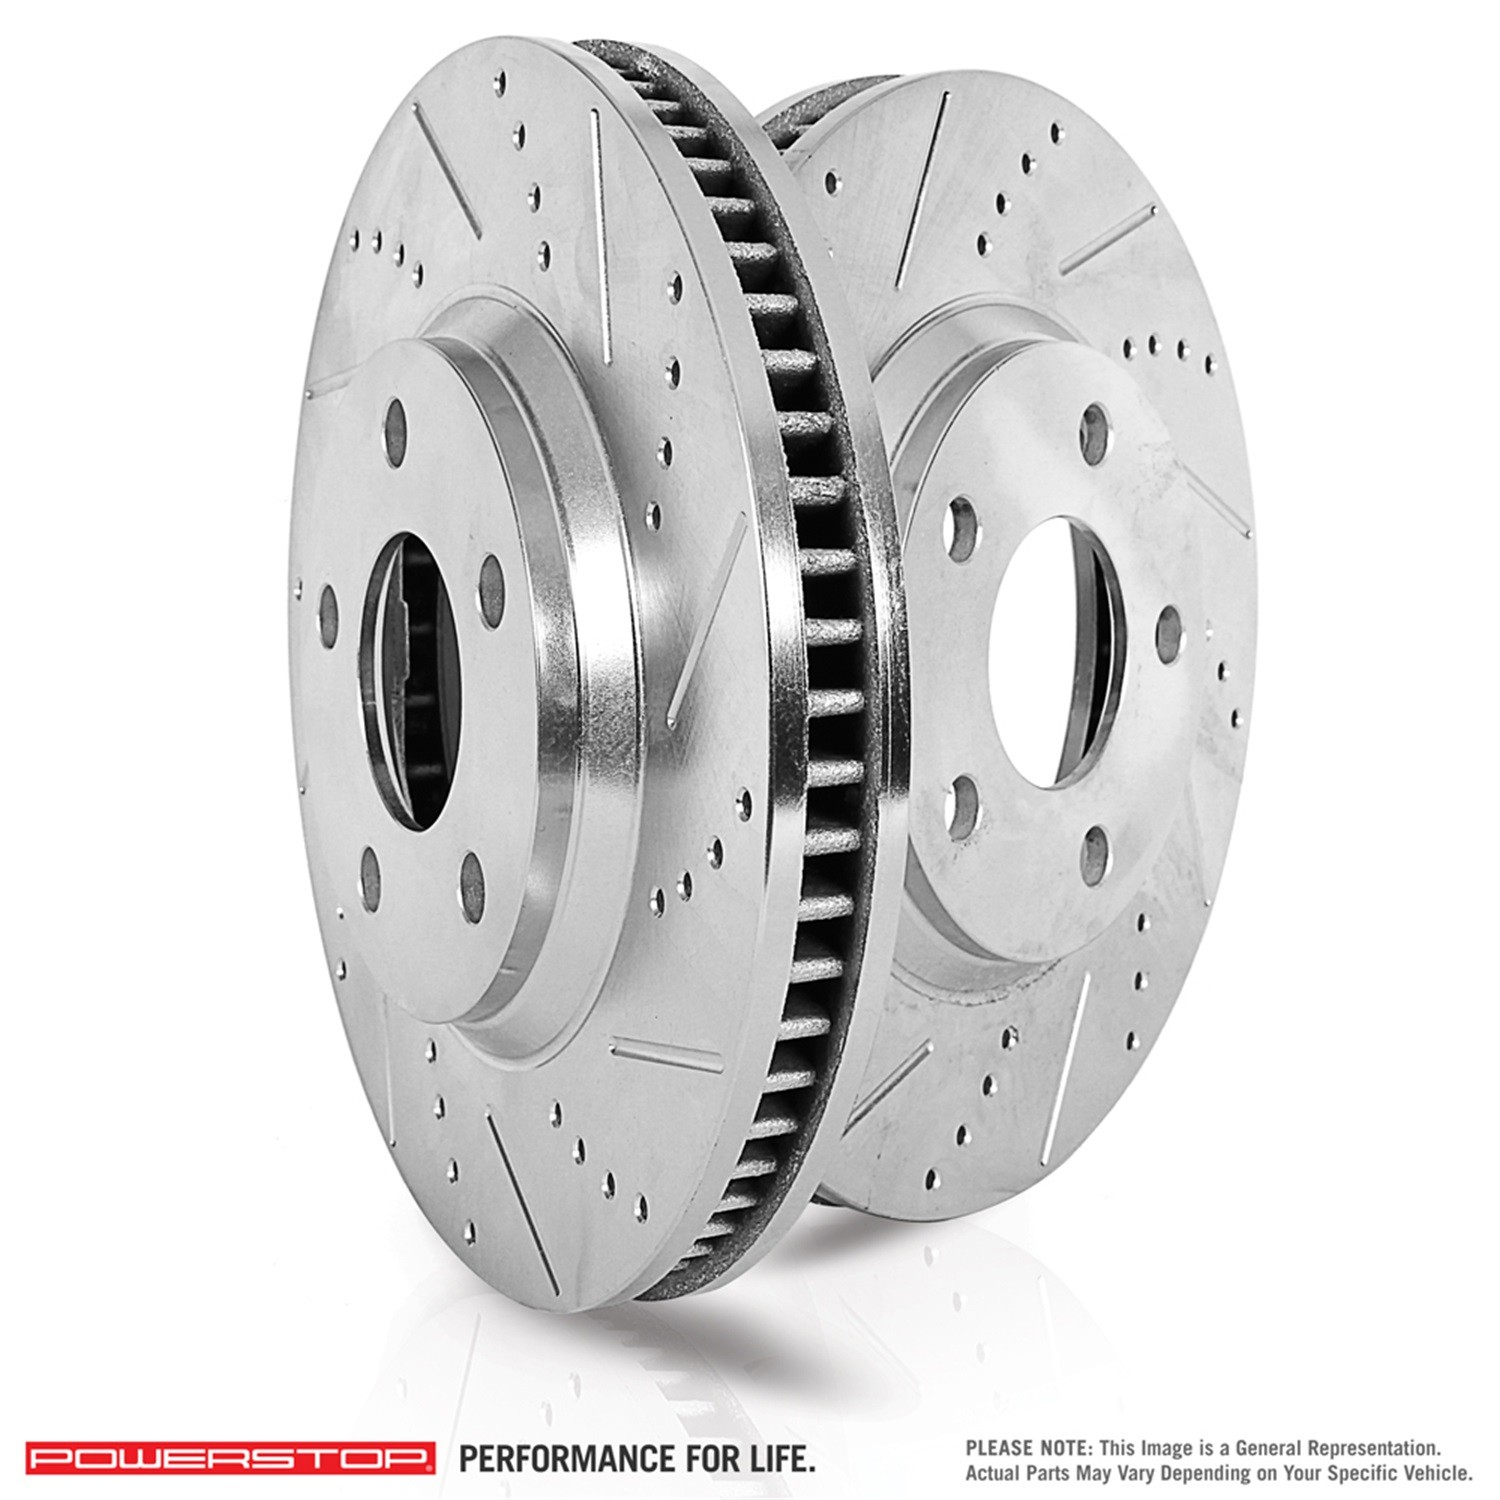 POWER STOP XPR - Power Stop Extreme Performance Drilled and Slotted Brake Rotors - PWX EBR1056XPR